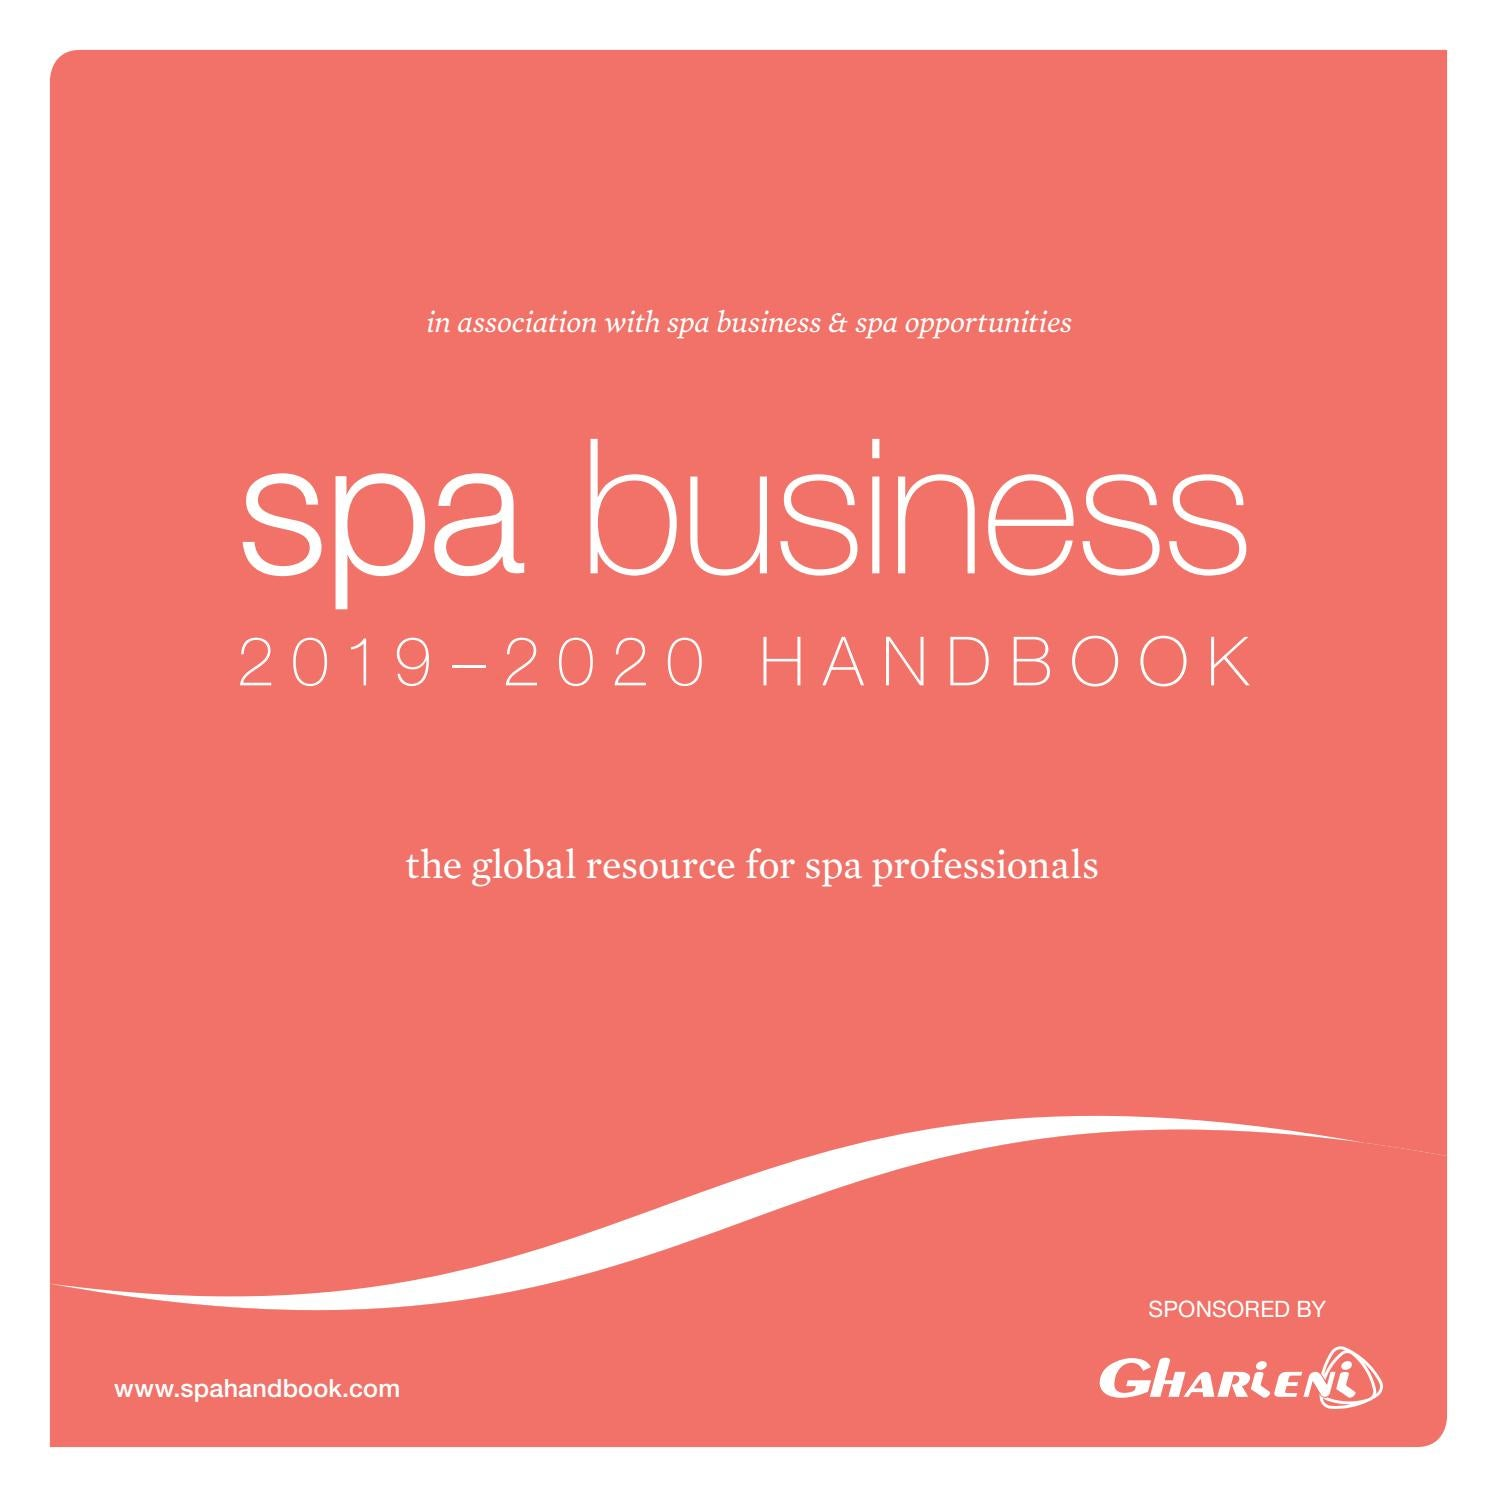 Spa Business_handbook 2019-2020 by Leisure Media - issuu